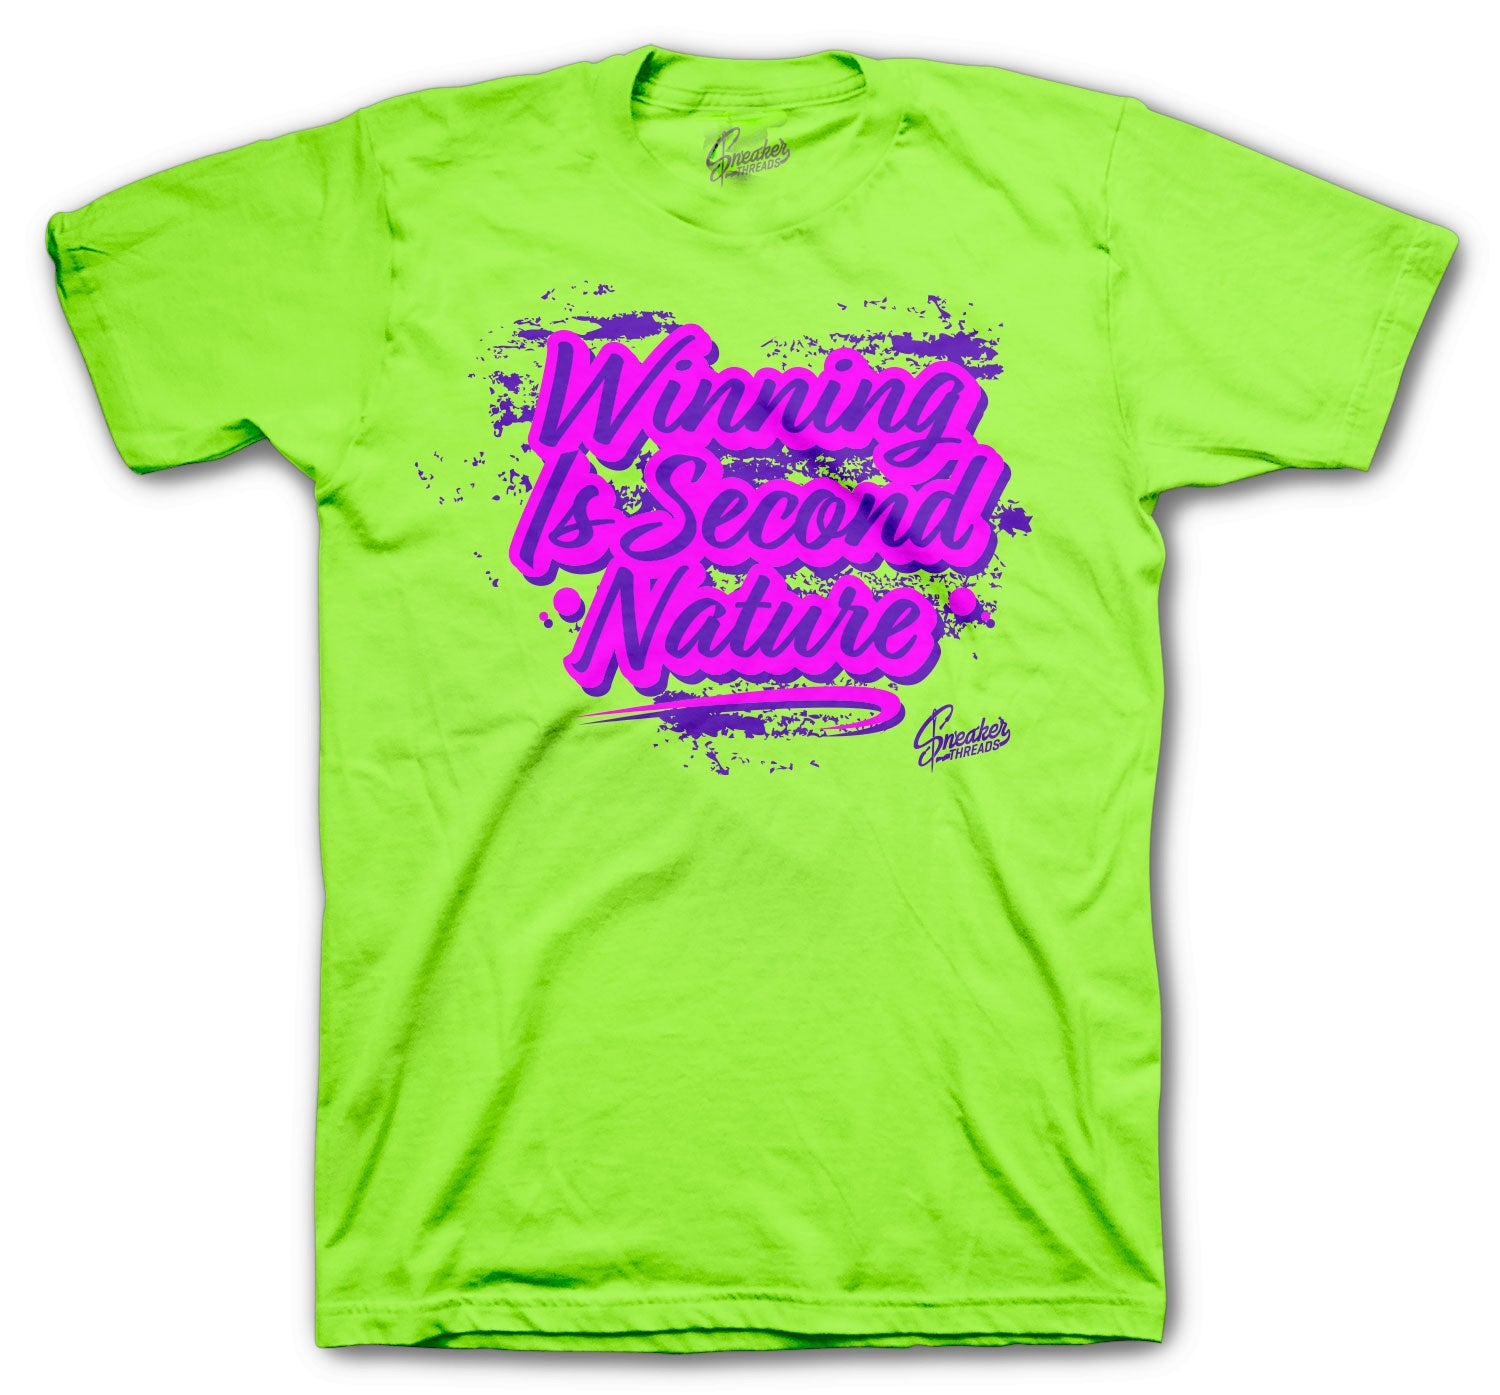 tees for men that match the Jordan 5 alternate bel air shoes